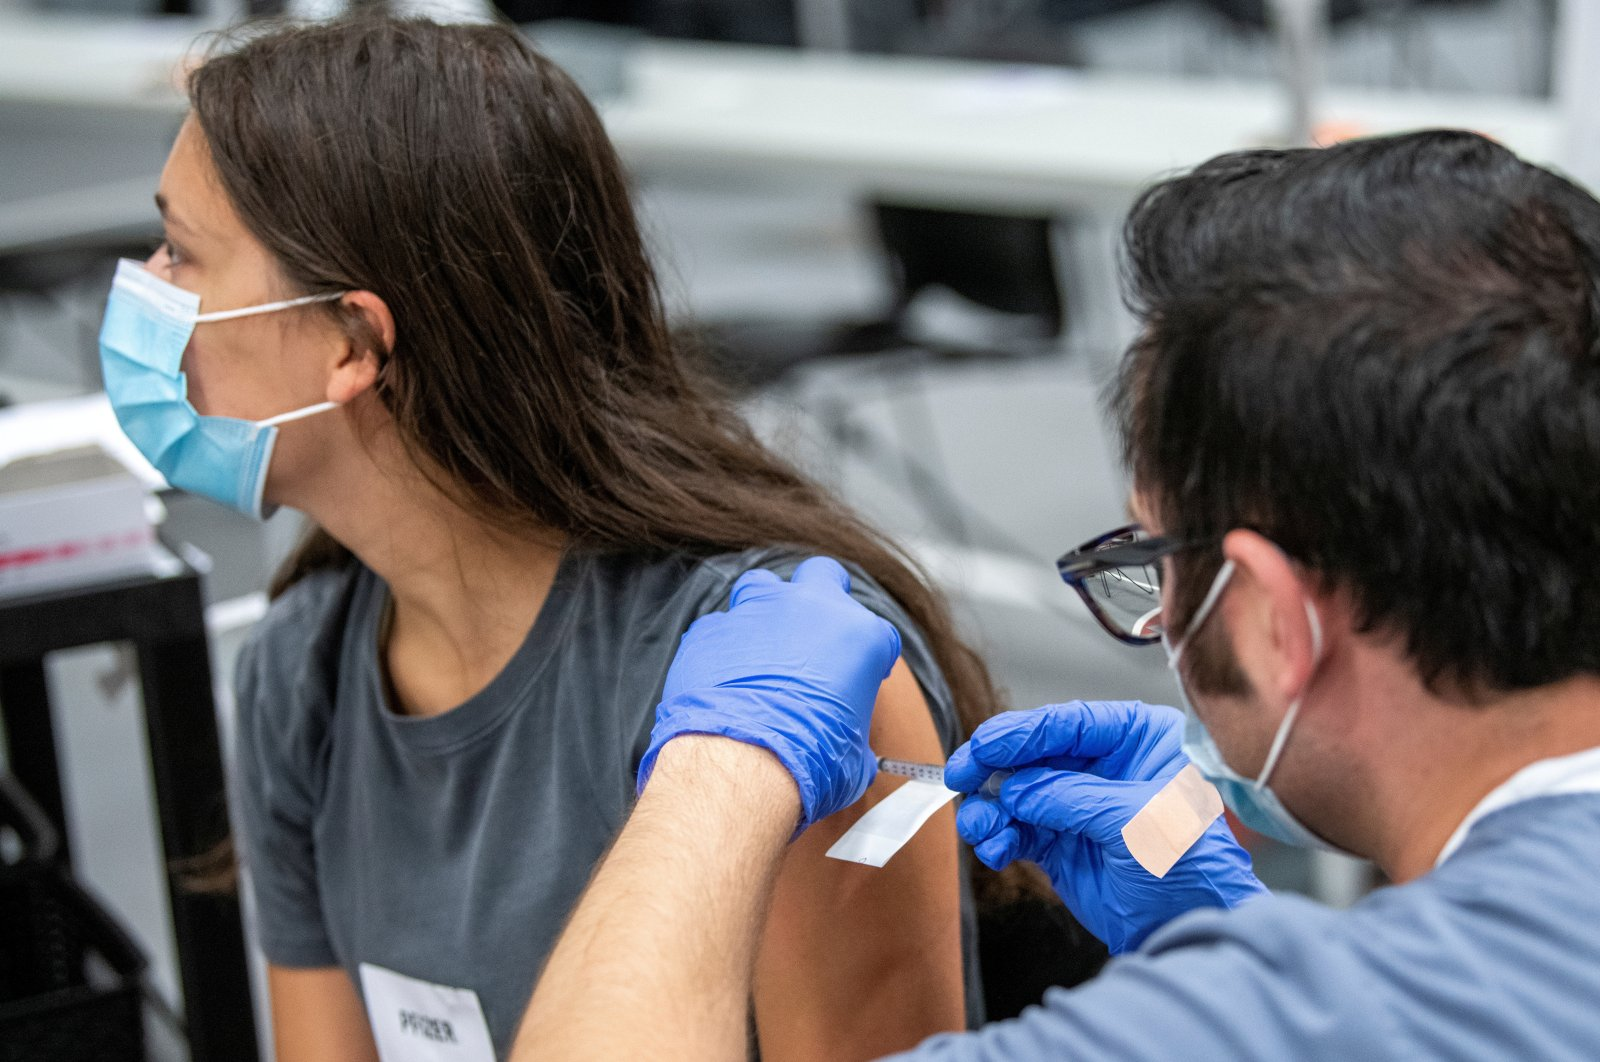 OSU student Ashlyn Gerlach of Saint Henry, Ohio, receives her second dose of the Pfizer coronavirus vaccine at a clinic at Ohio State University in Columbus, Ohio, U.S., Sept. 15, 2021. (Reuters Photo)